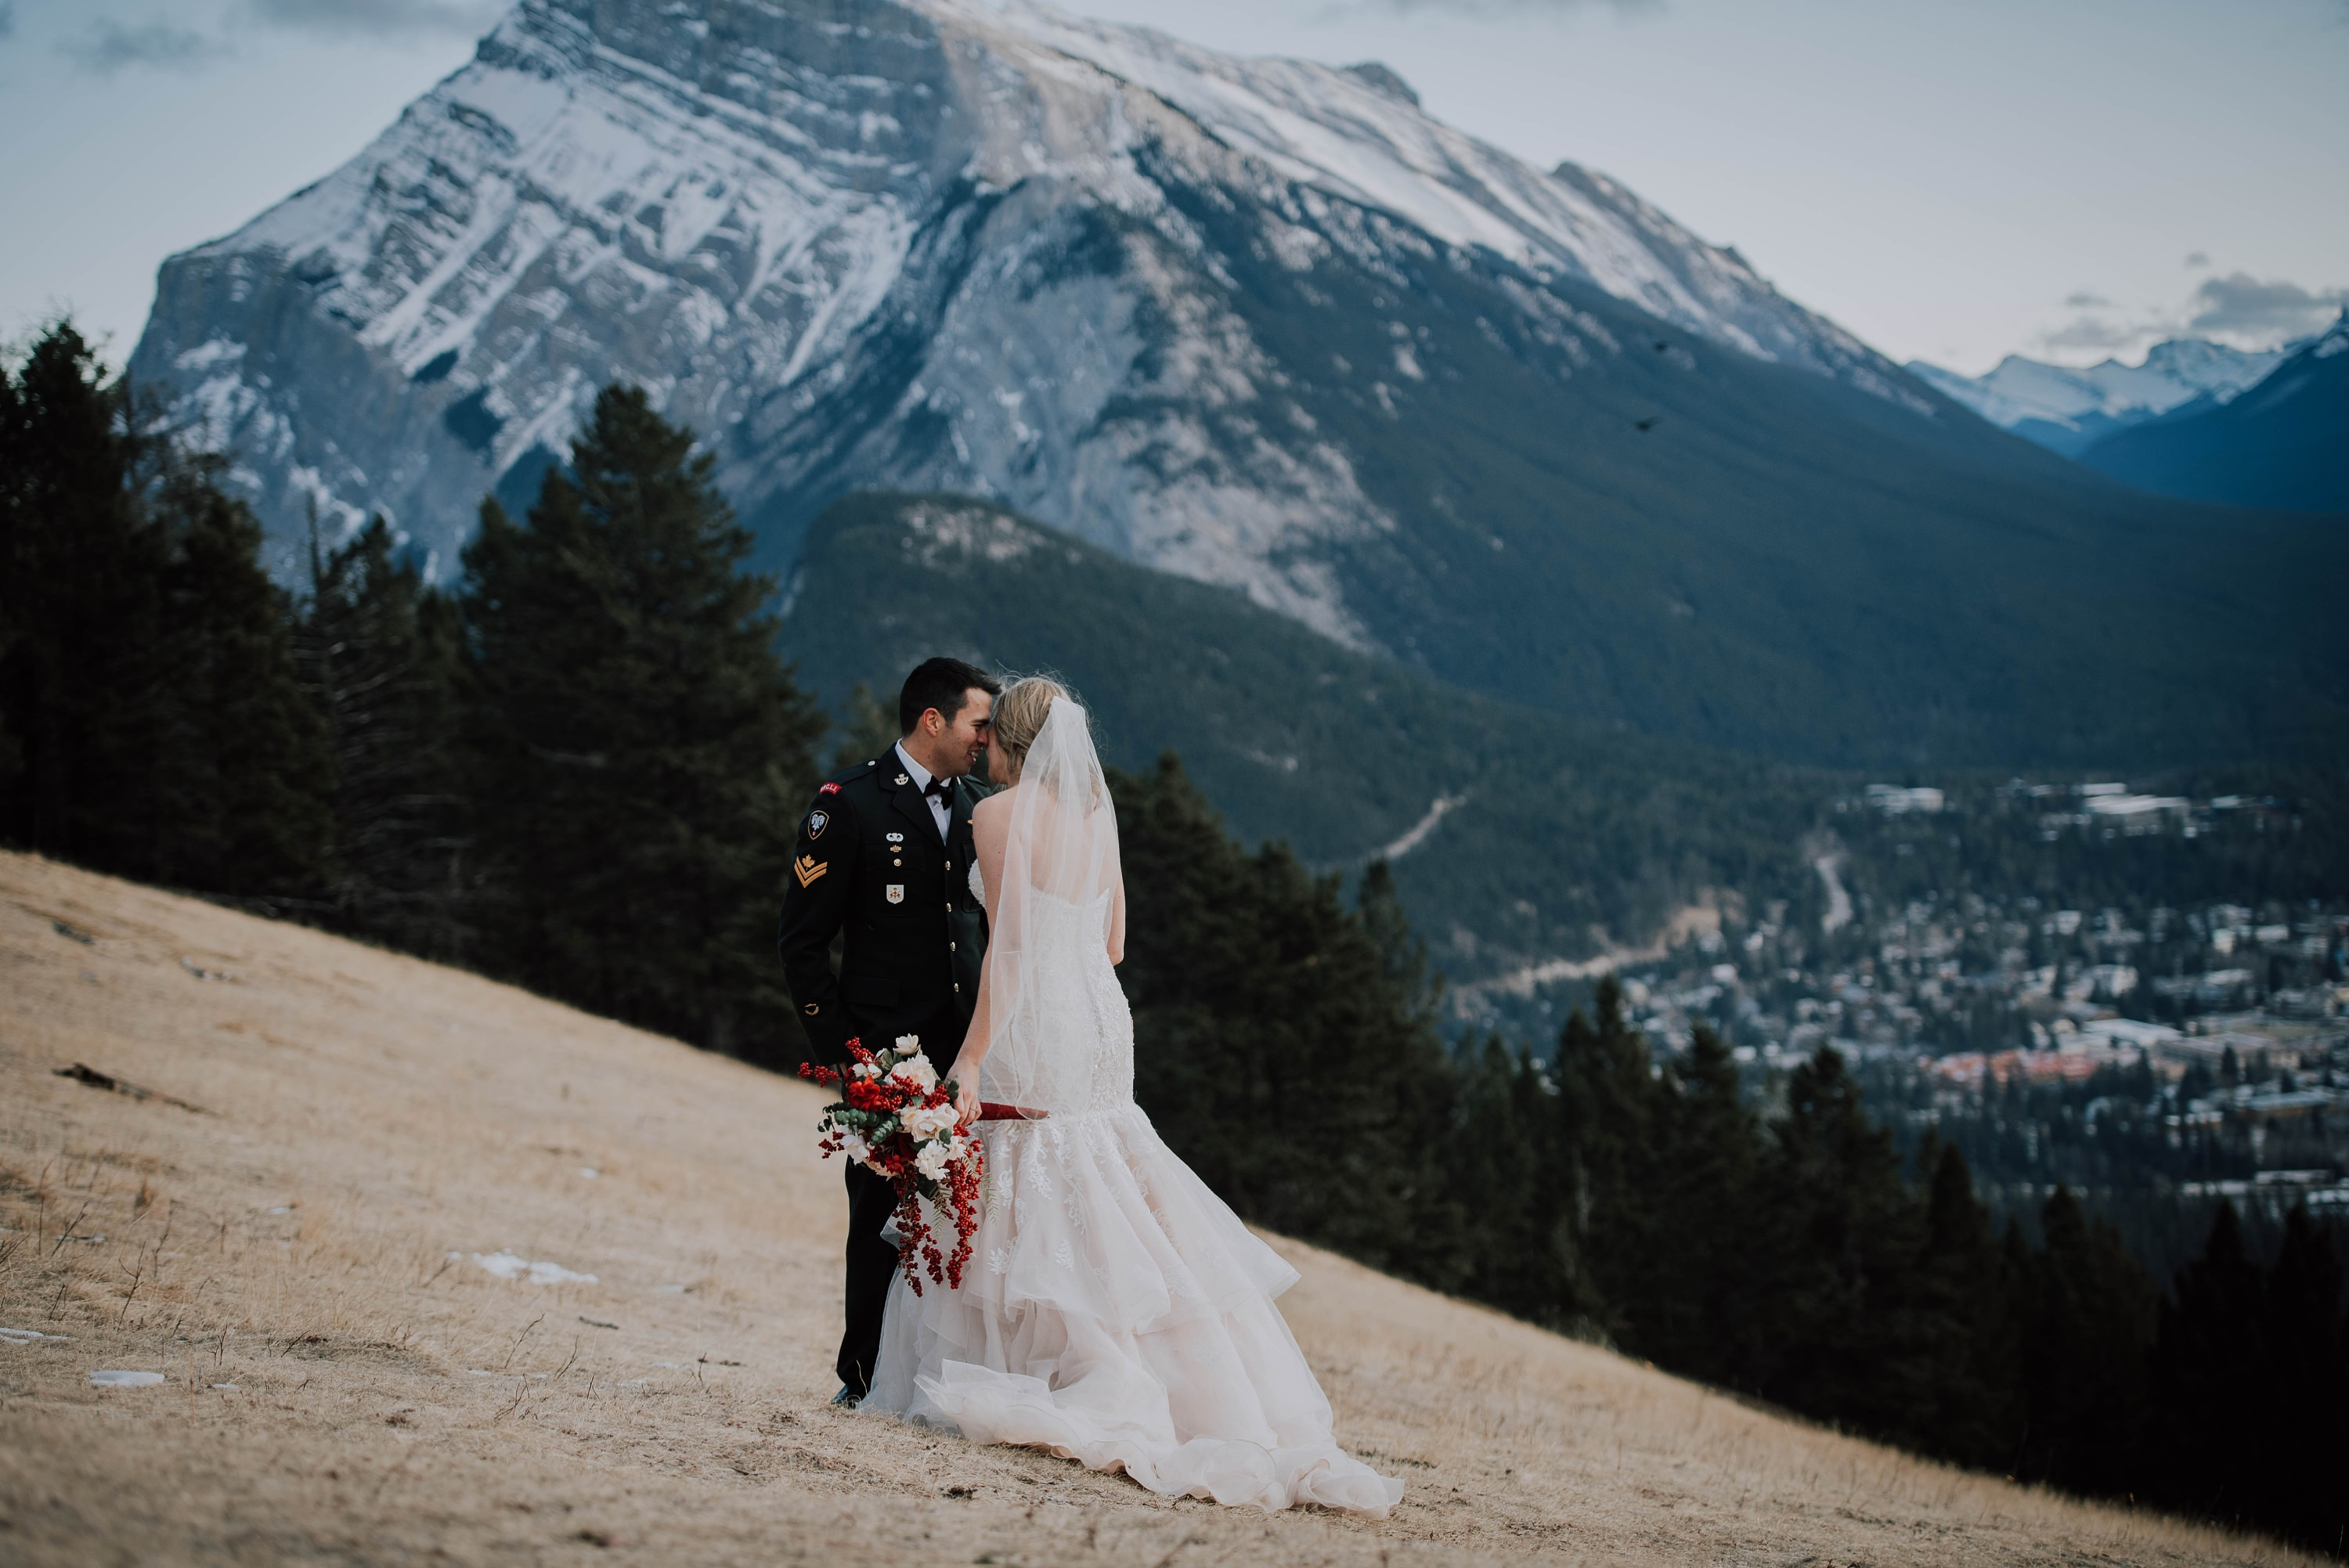 Calgary Wedding Photographer, Banff Wedding Photographer, Top Wedding Photographers Calgary, Top Wedding Photographer Banff, Winter Wedding, Mountain Wedding, Mountain Elopement, Banff Elopement Photographer, Destination Wedding Photographer, Norquay Wedding, Norquay Wedding Photographer